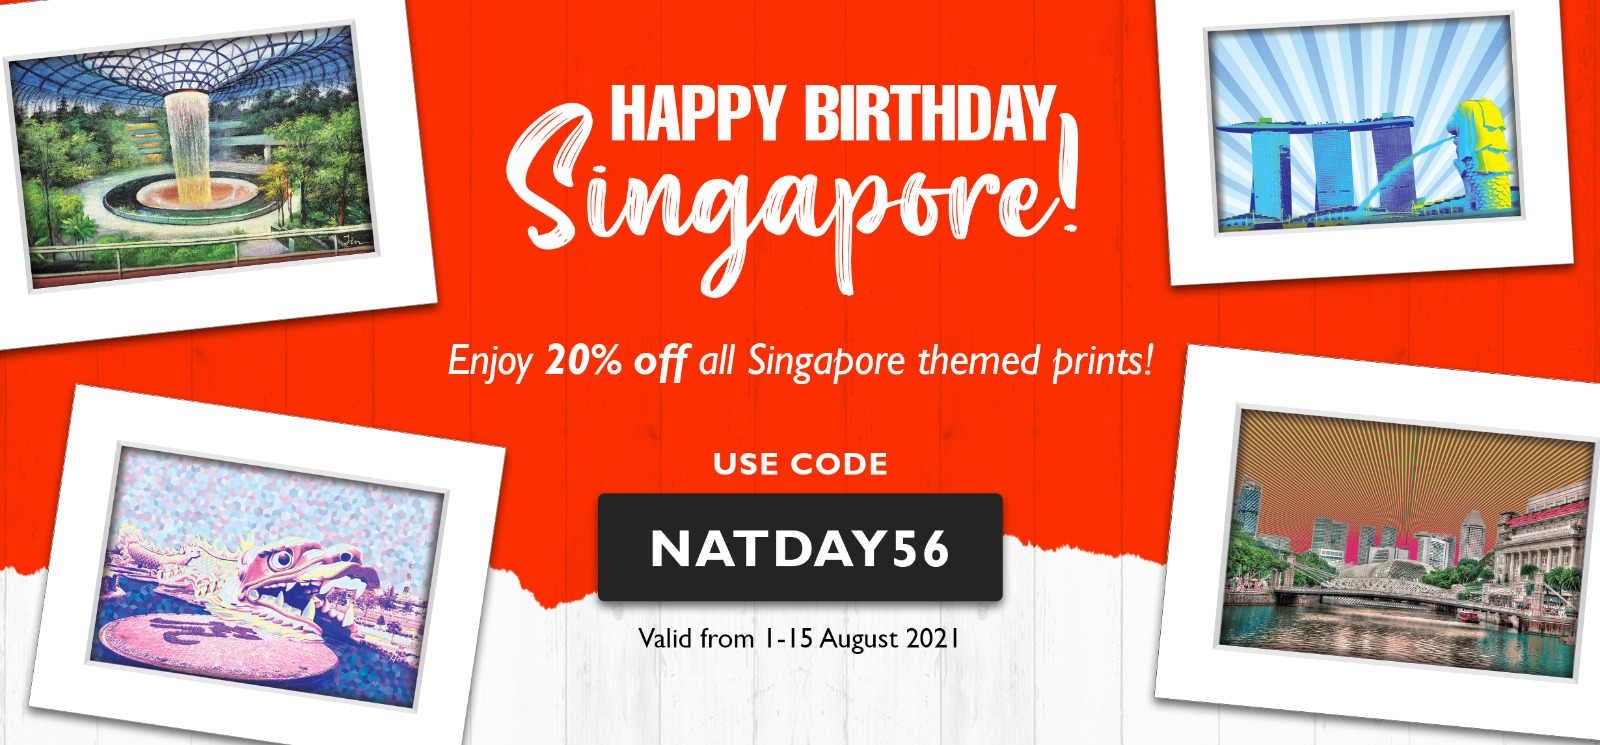 NATDAY56